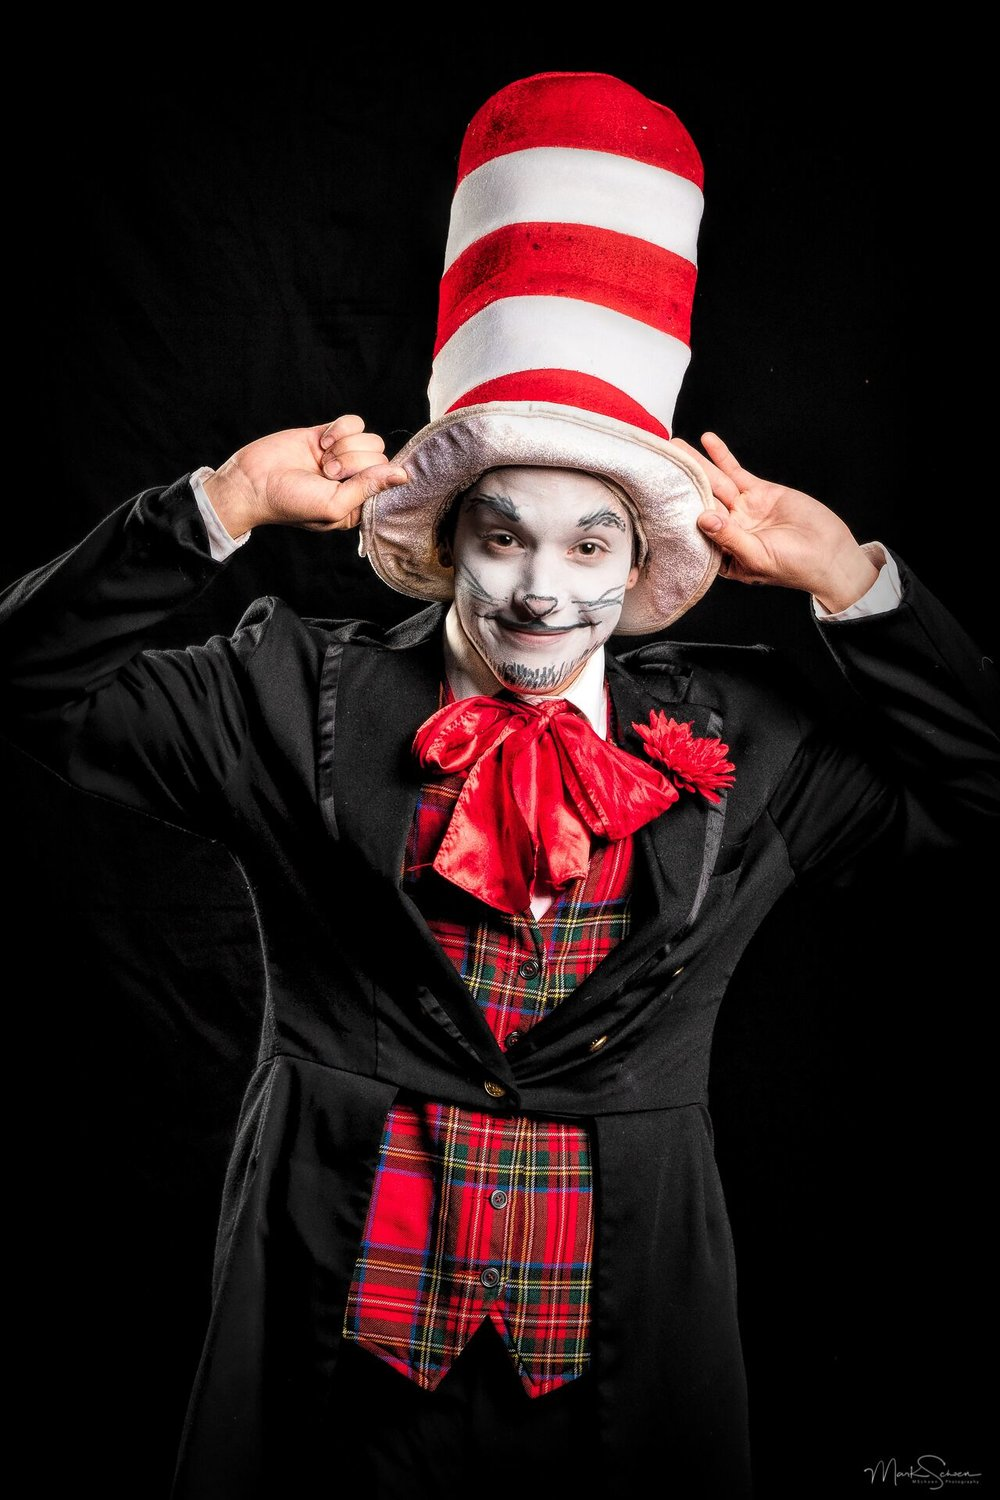 The Cat in the Hat comes to life in Plaza Theatrical Productions' staging of the classic Dr. Seuss tale March 16-17.